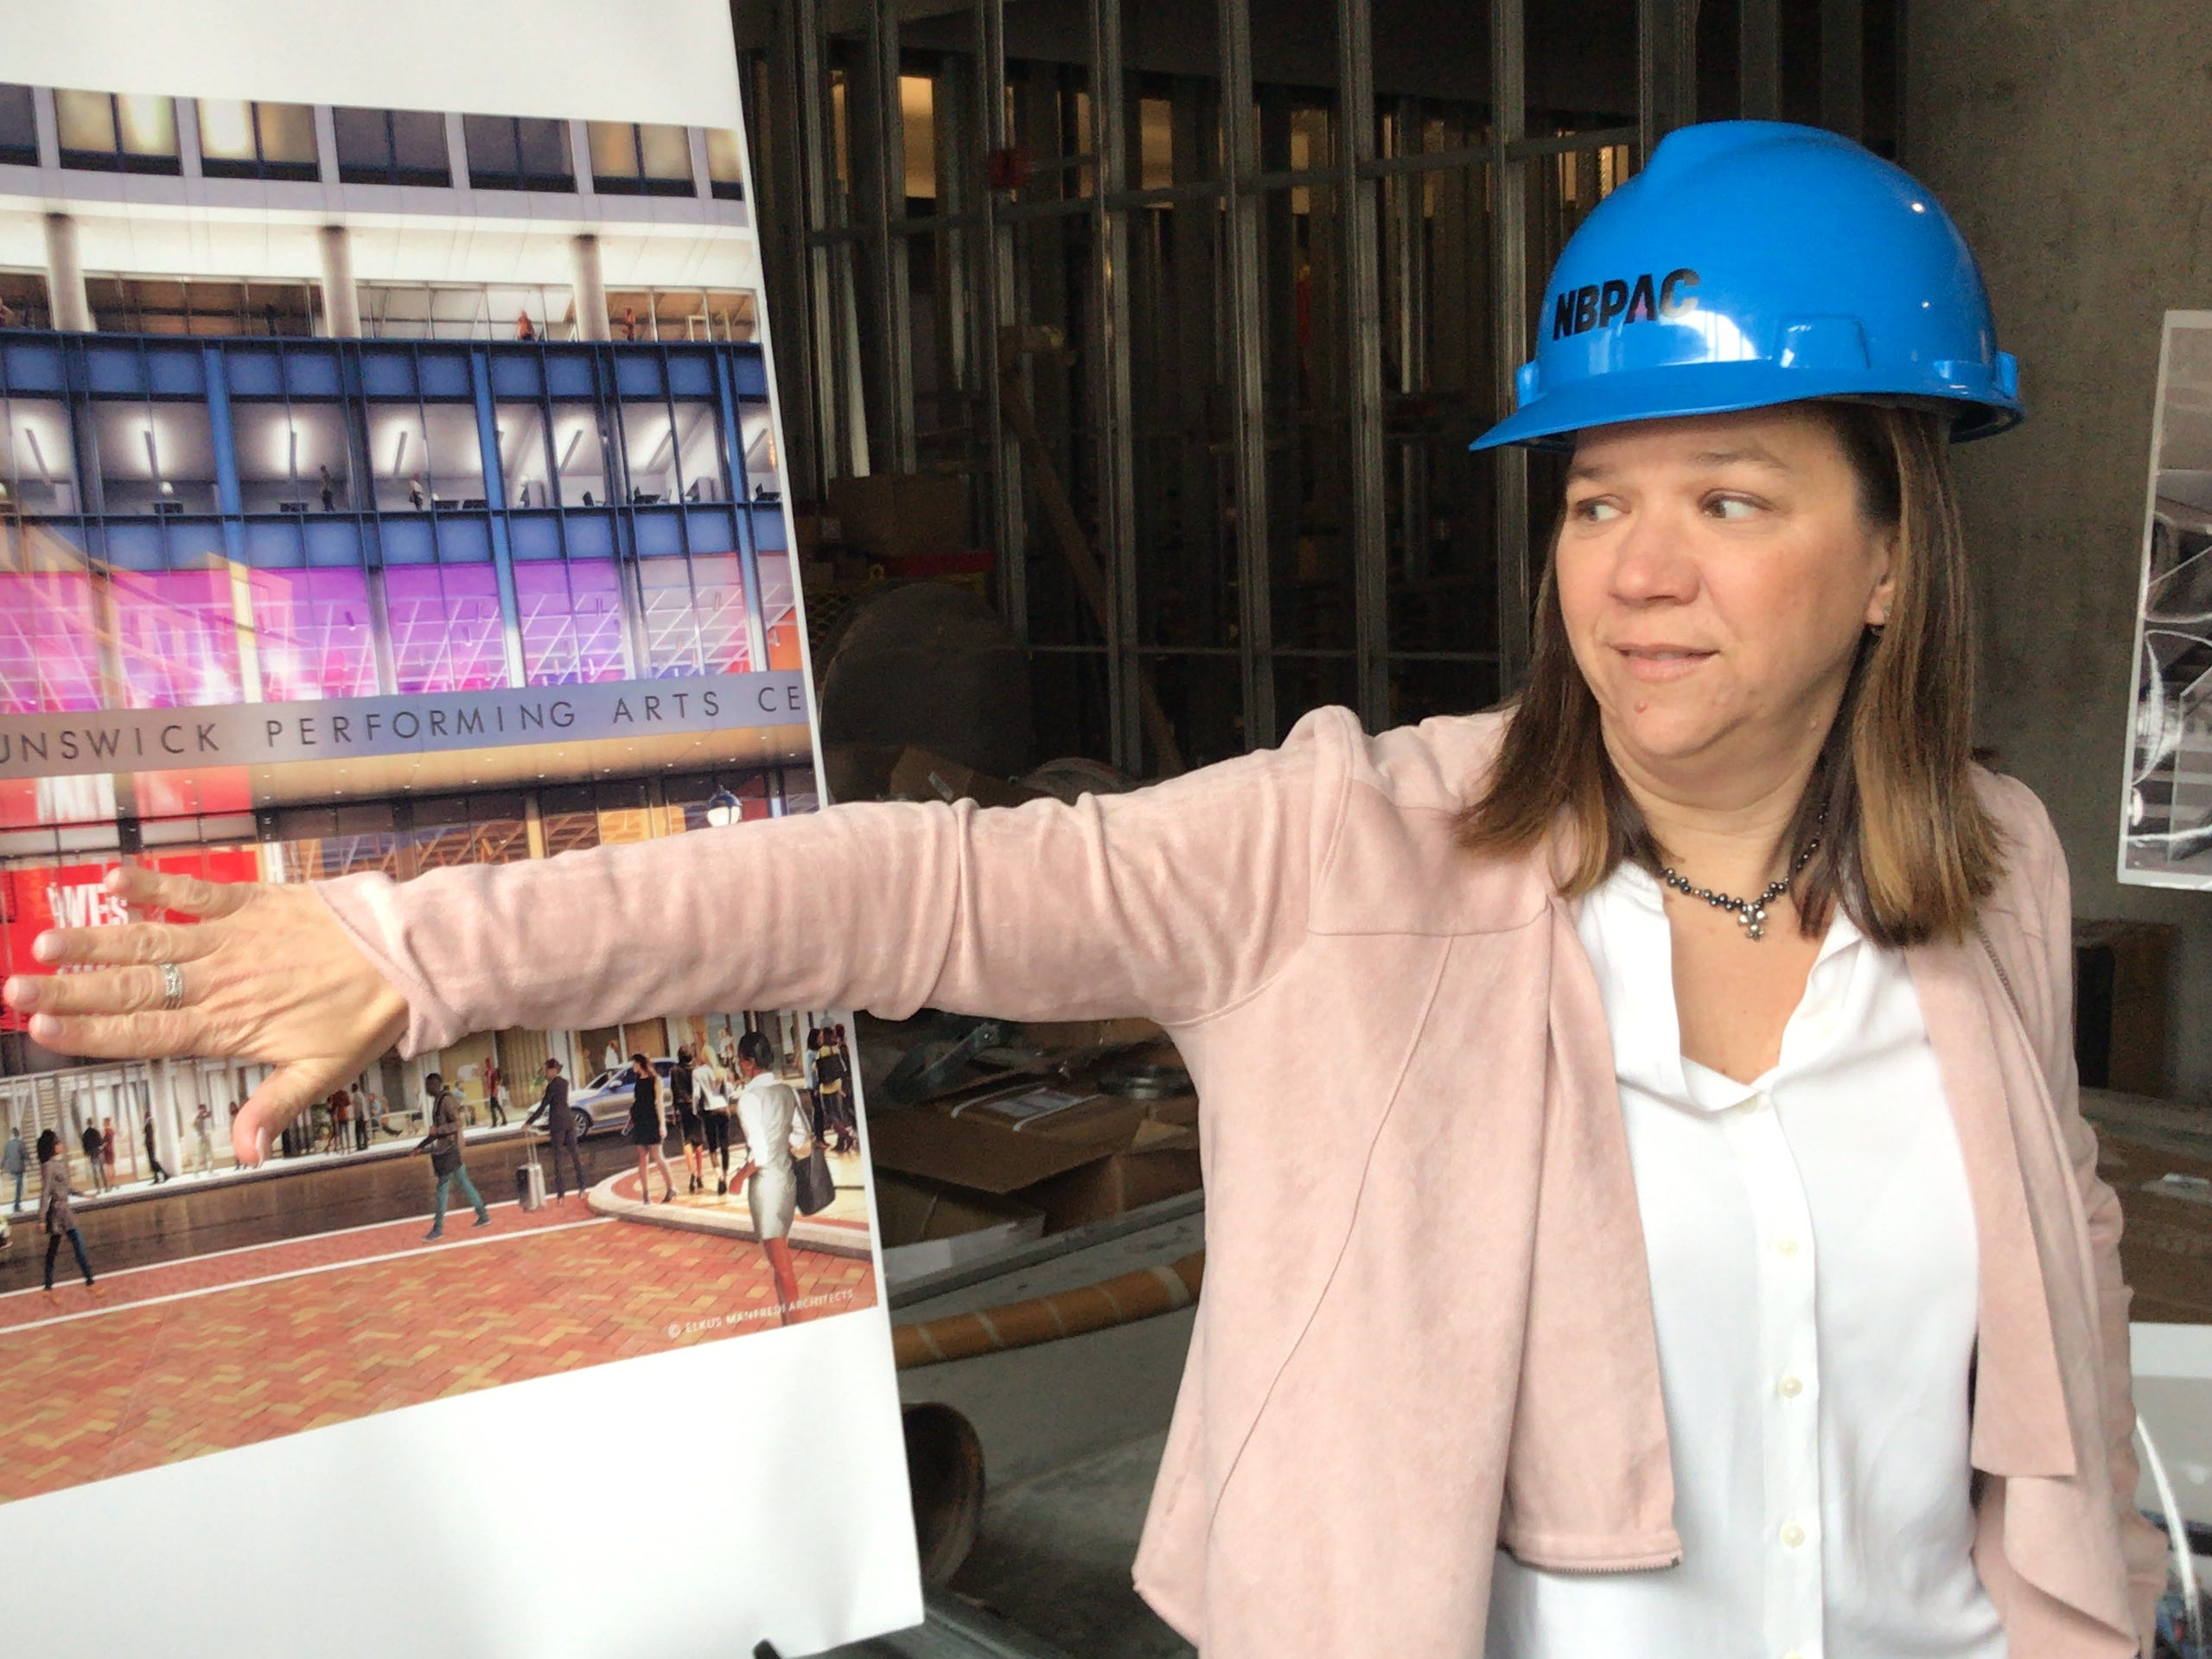 DEVCO Vice President Merissa A. Buczny  points out a digital billboard that be within the soon-to-open New Brunswick Performing Arts Center.